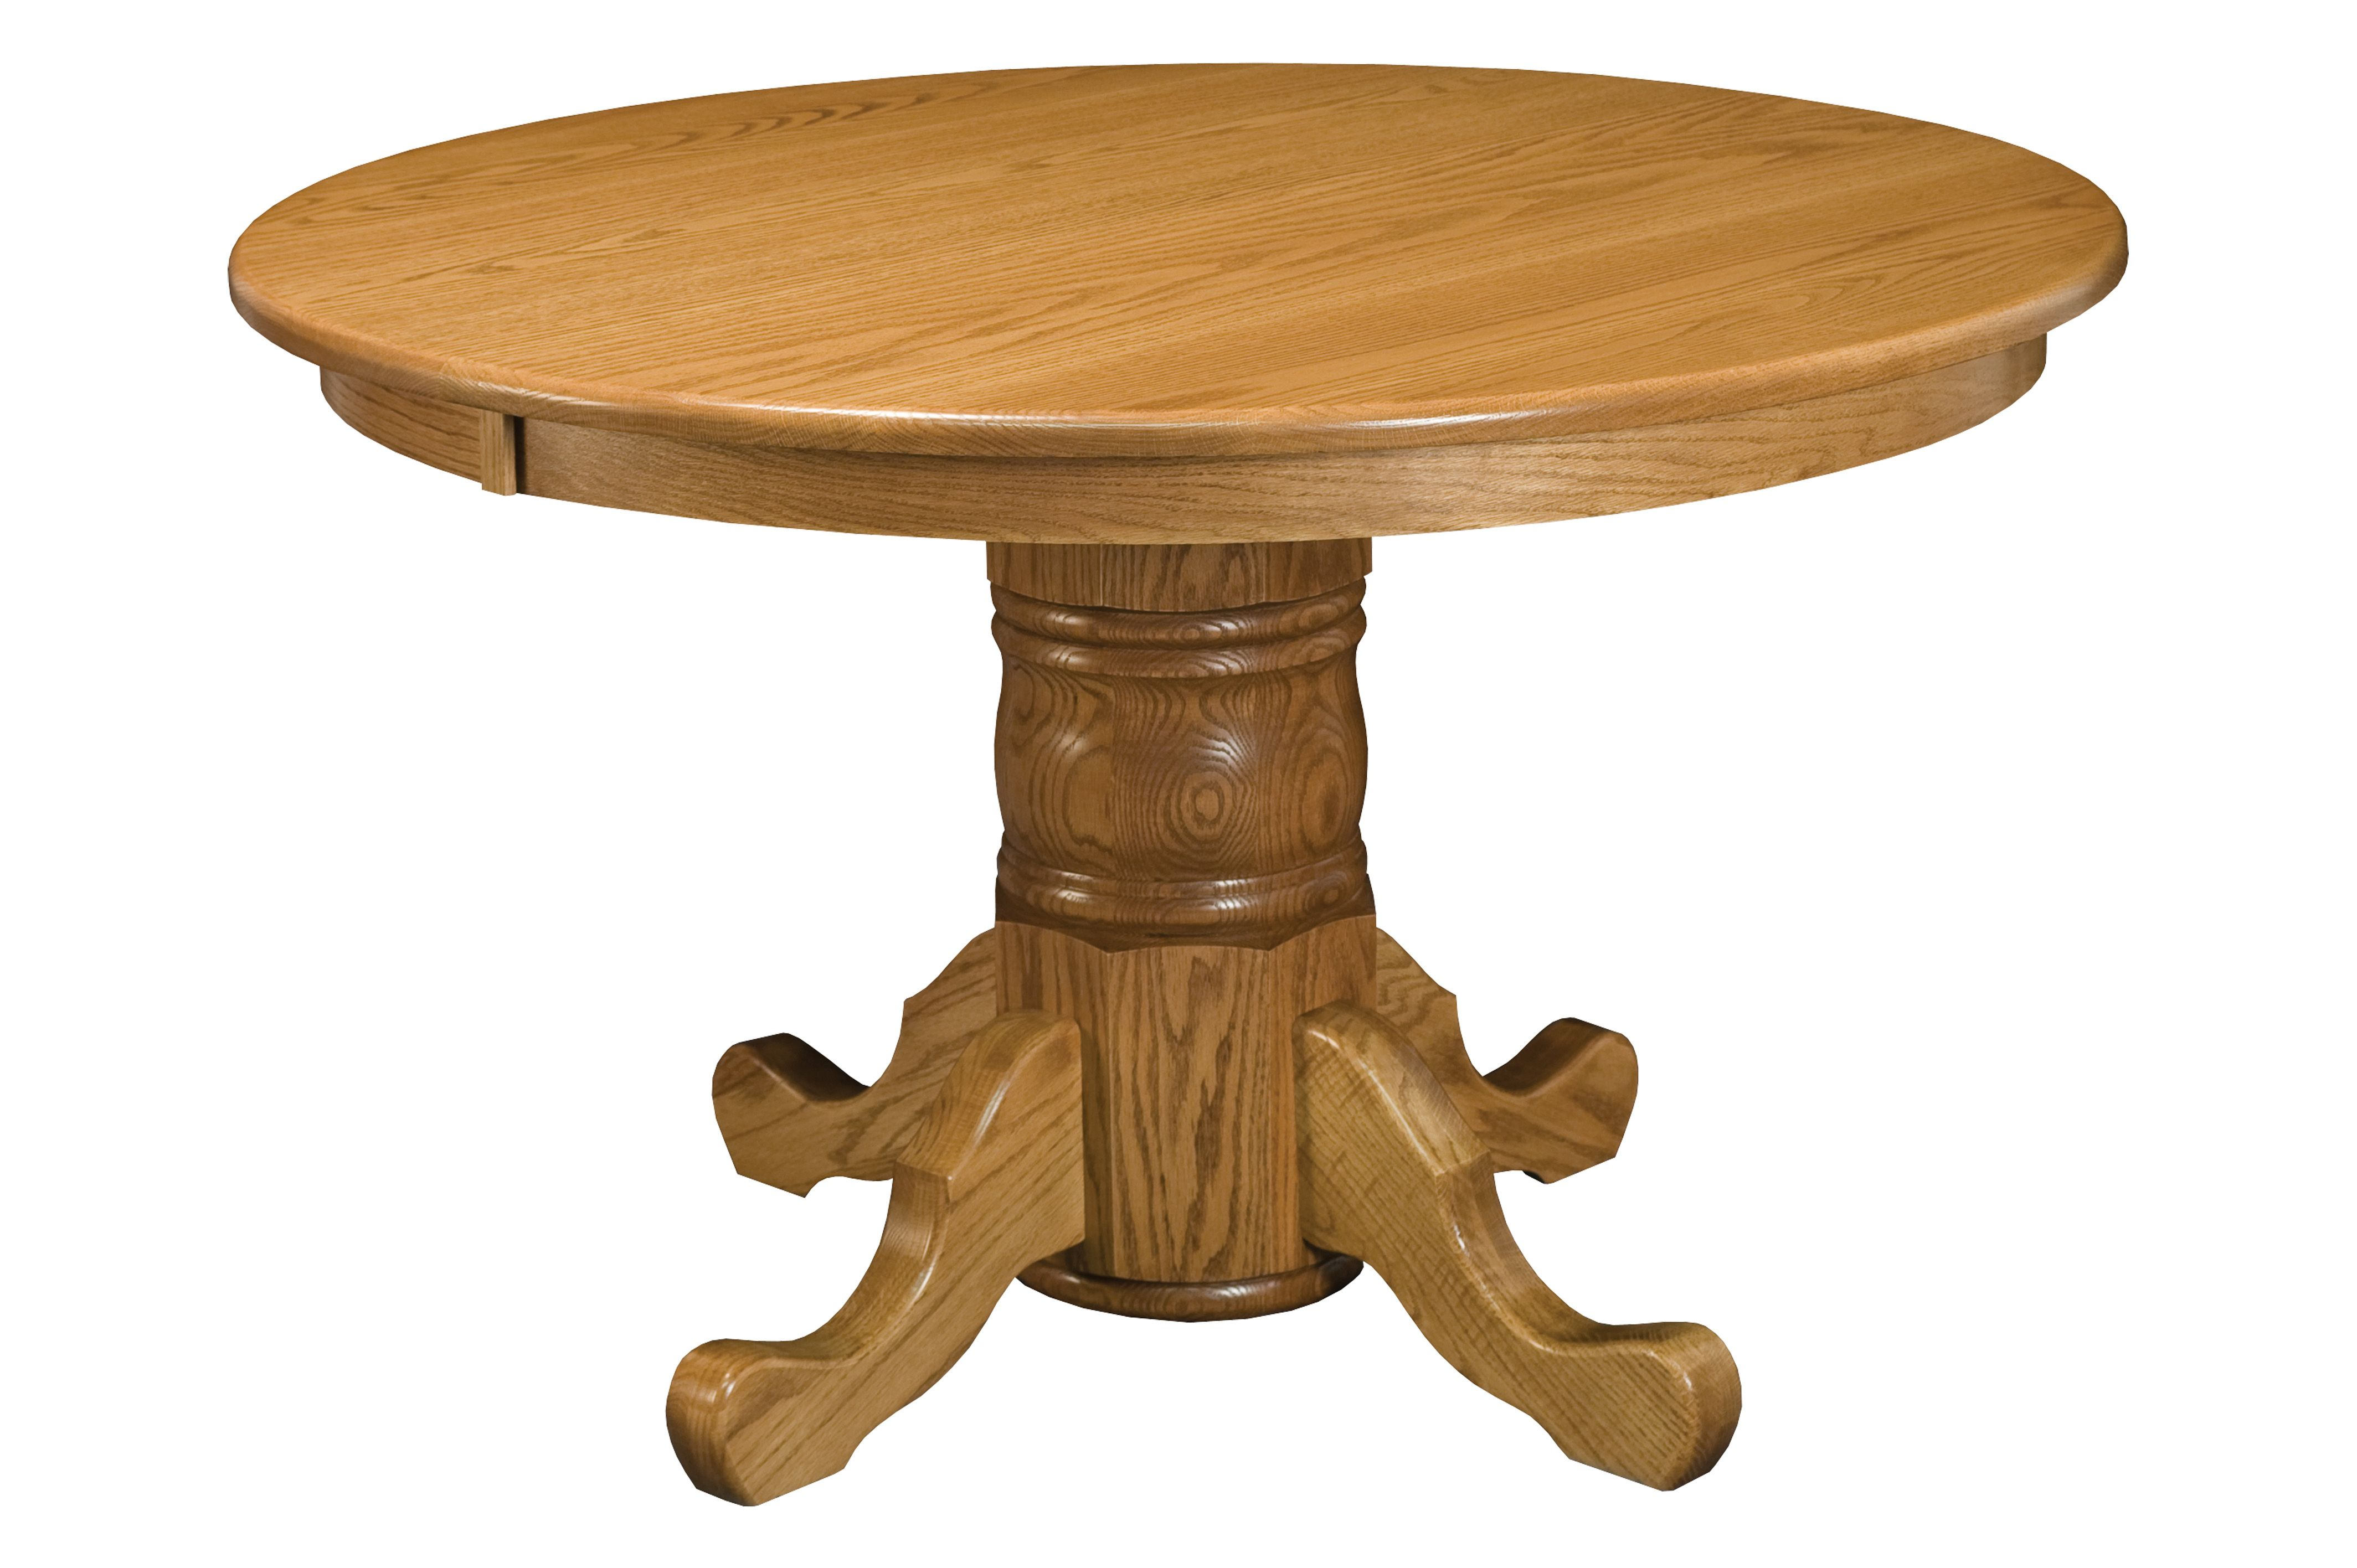 Amish Made Kitchen Tables Kitchen table dining tables traditional amish made single kitchen table dining tables traditional amish made single pedestal amish made workwithnaturefo